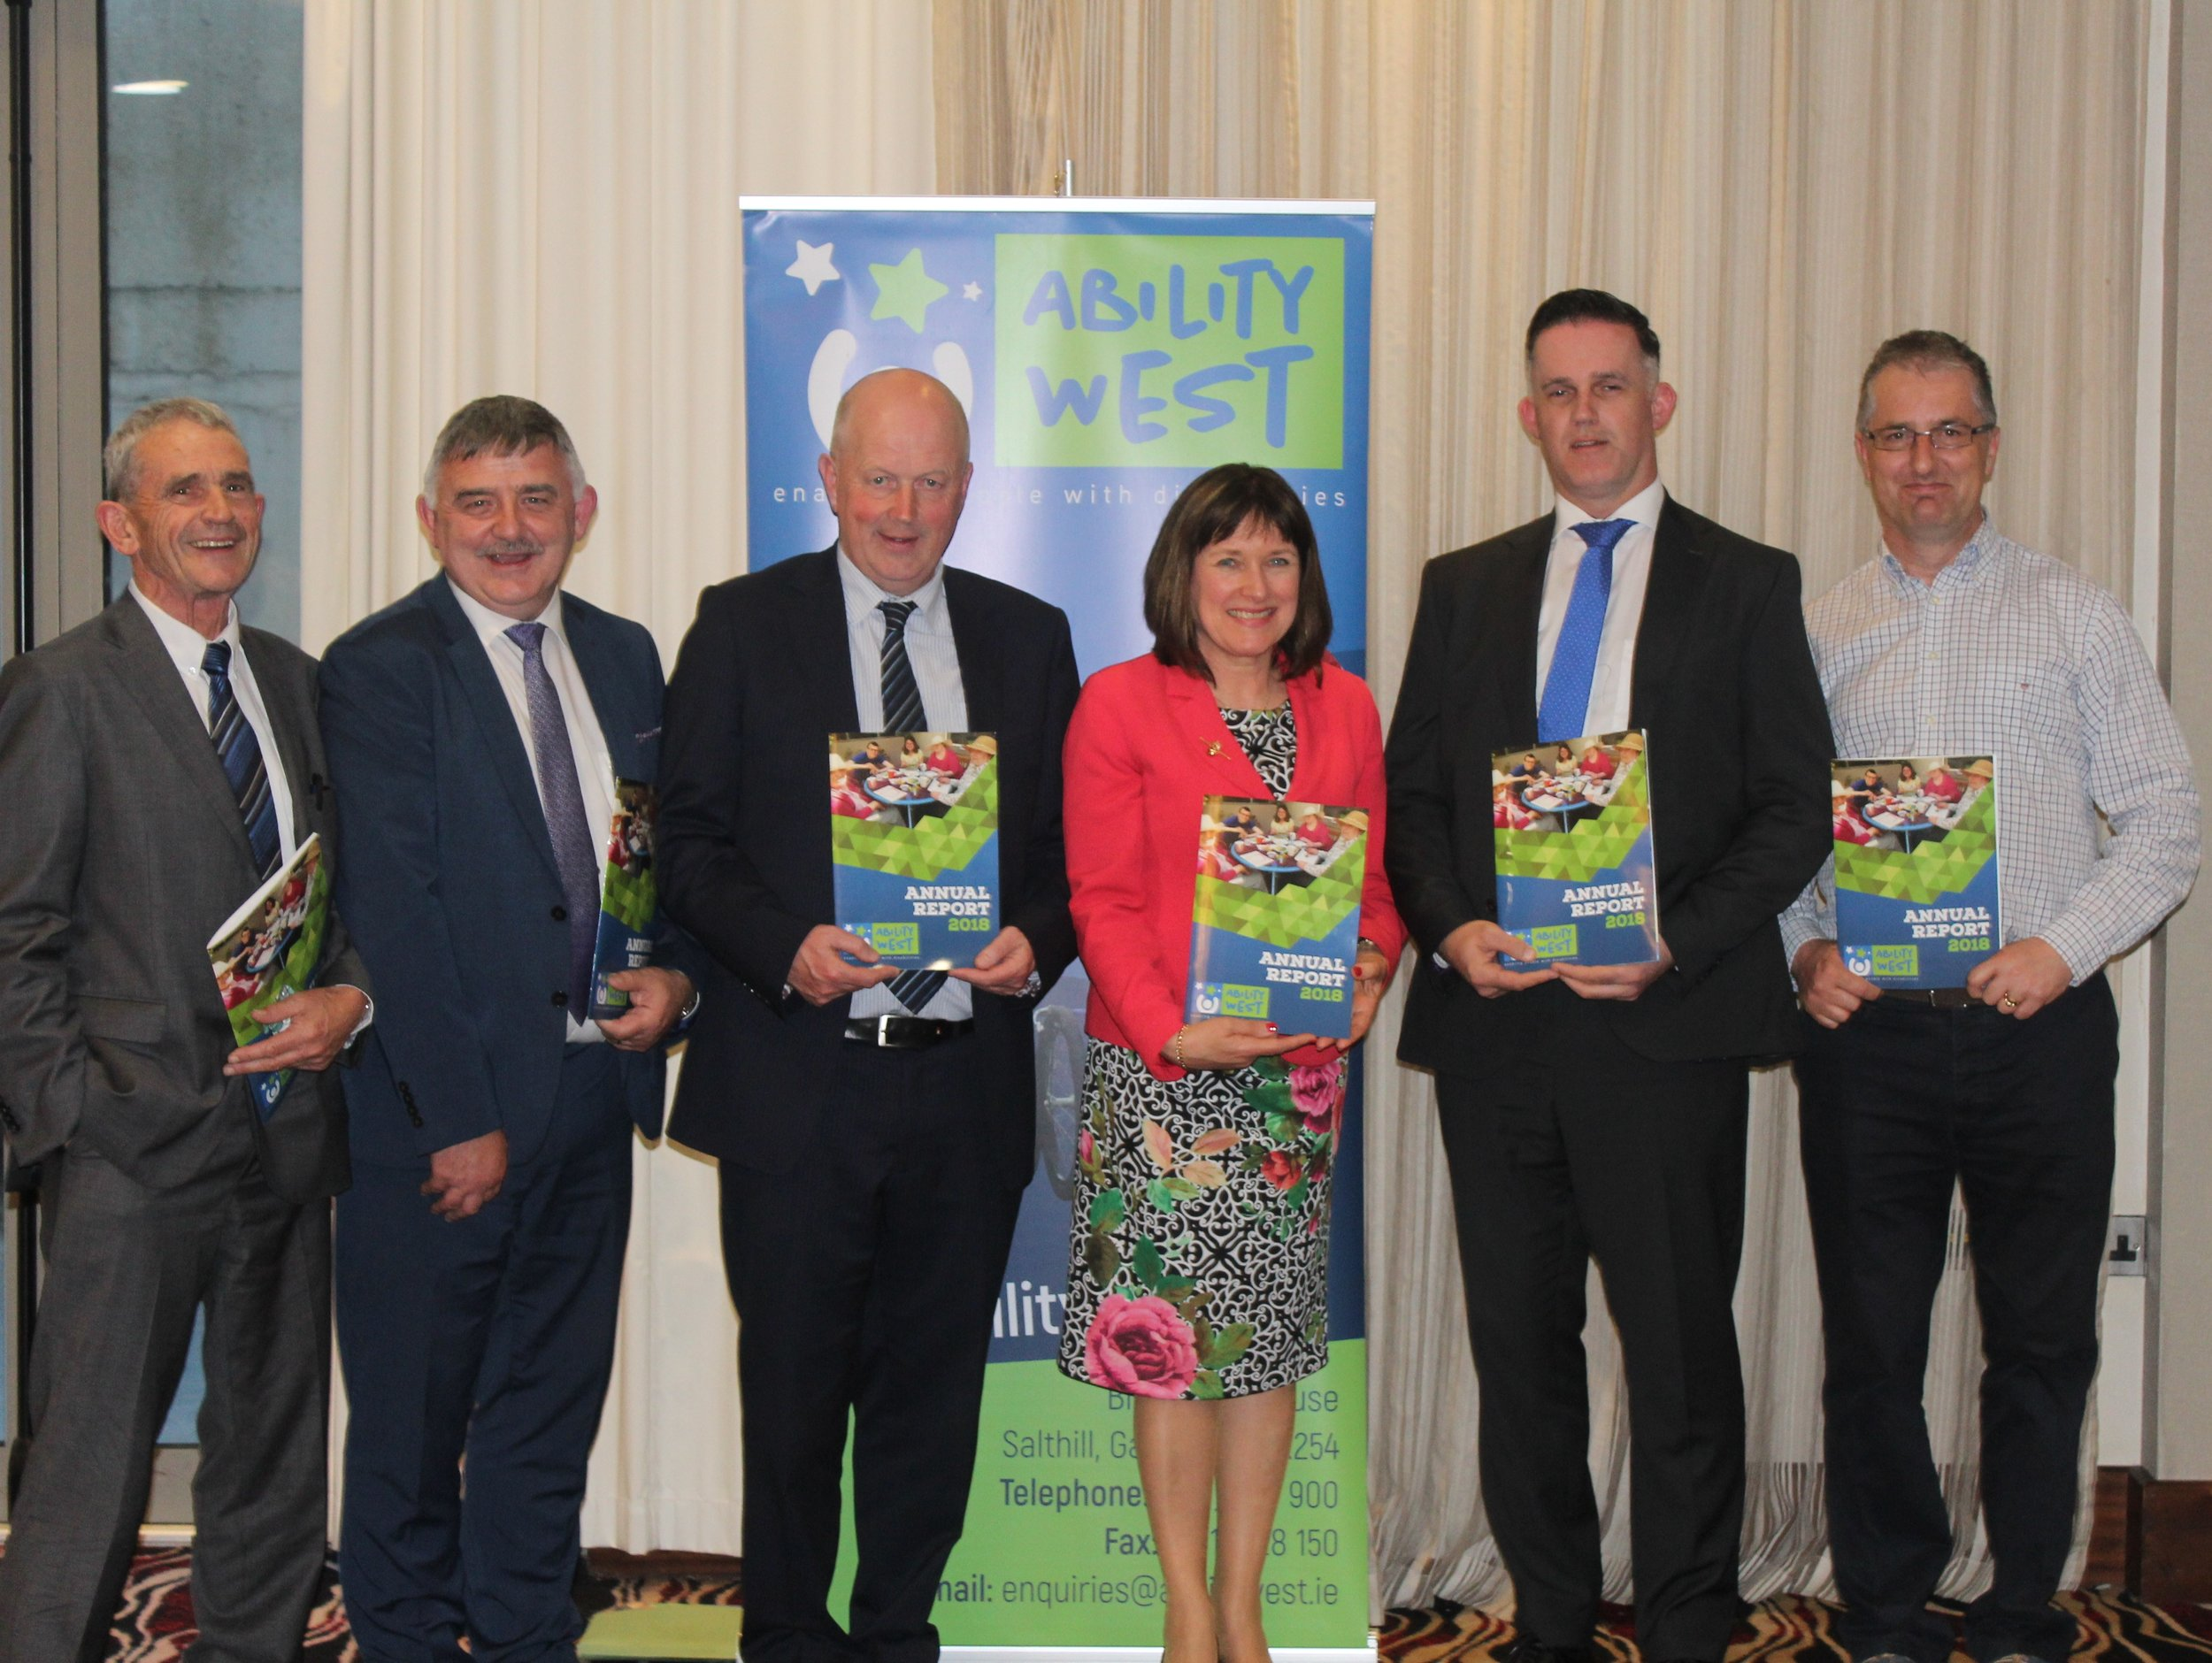 Paddy Daly, Company Secretary, John McHugo, Director of Finance, Ray Kelly, Chairman, Breda Crehan-Roche, CEO, Dermot Callanan, Partner, FCC Chartered Accountants and Registered Auditors, Gerry Burke, Finance, HSE CHO West